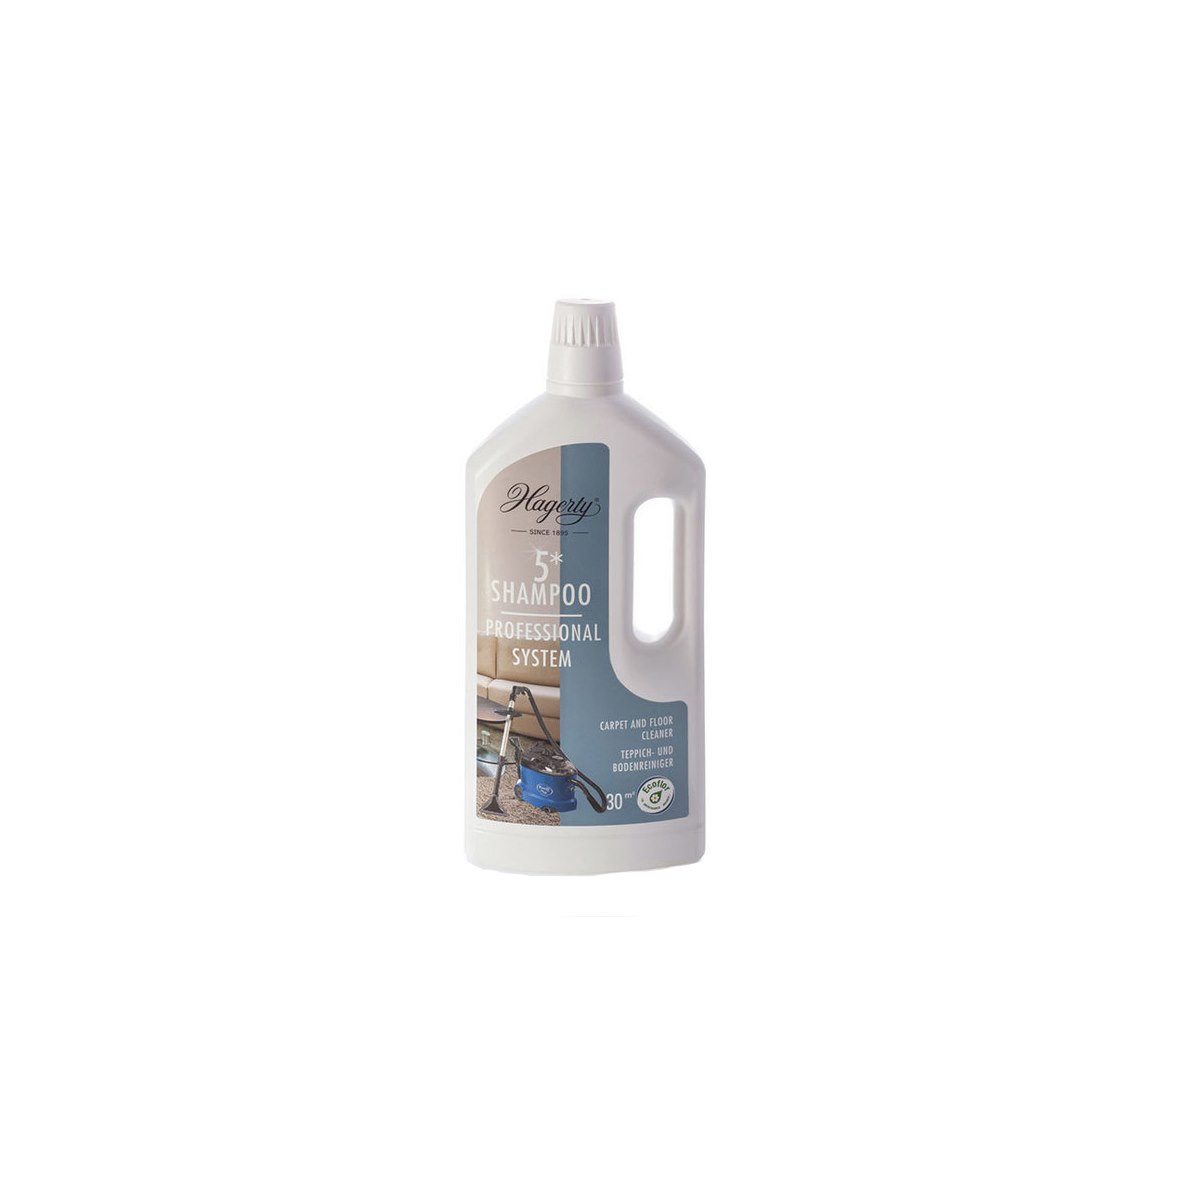 Hagerty 5* Professional Carpet Shampoo 1 Litre